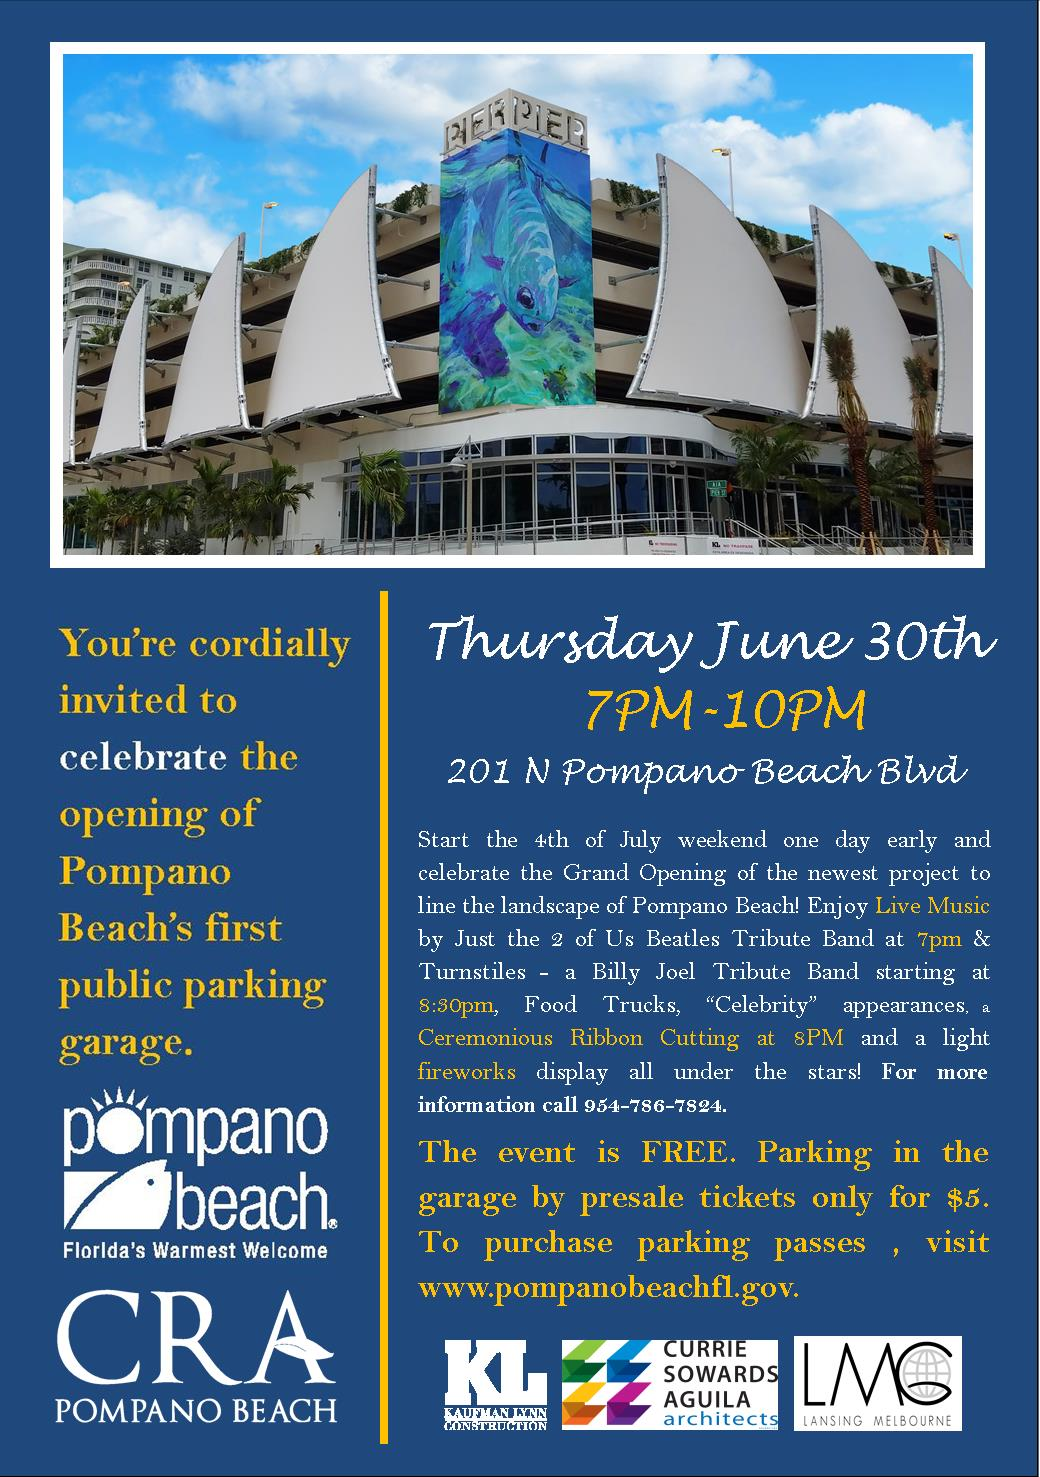 One Comment To Celebrate The Opening Of Pompano Beach S First Public Parking Garage